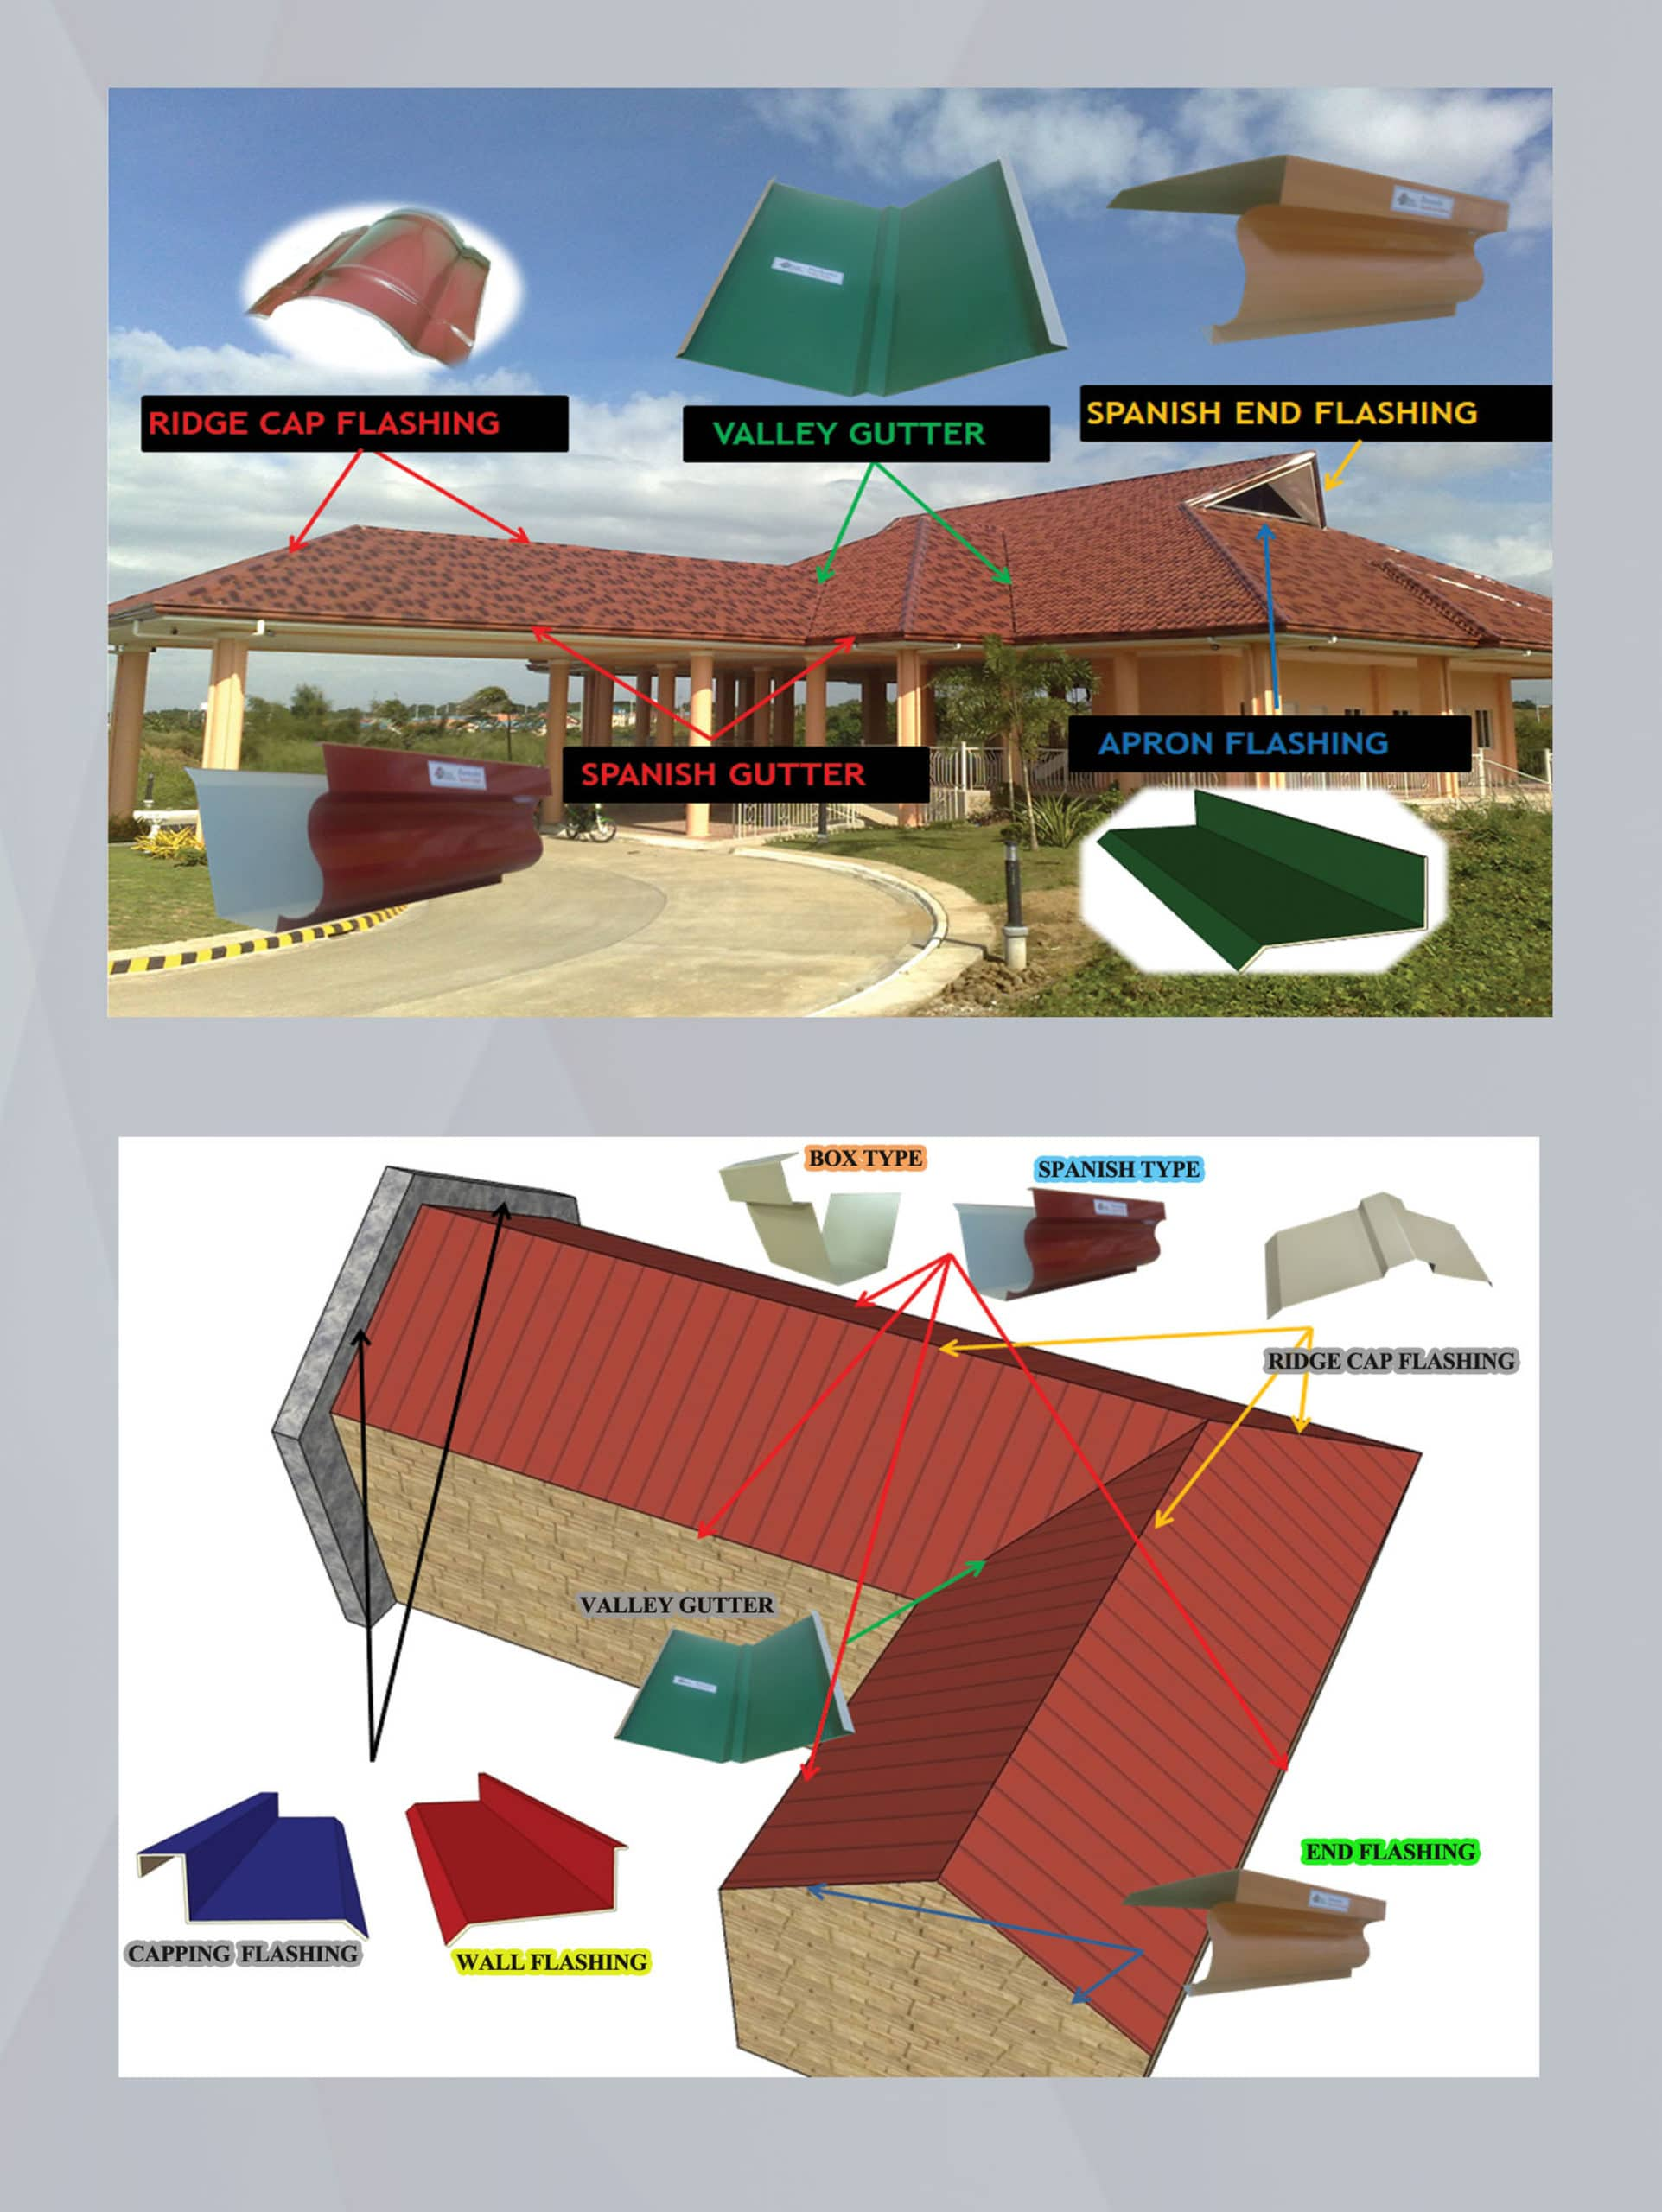 Roofing 102: Roofing System Components